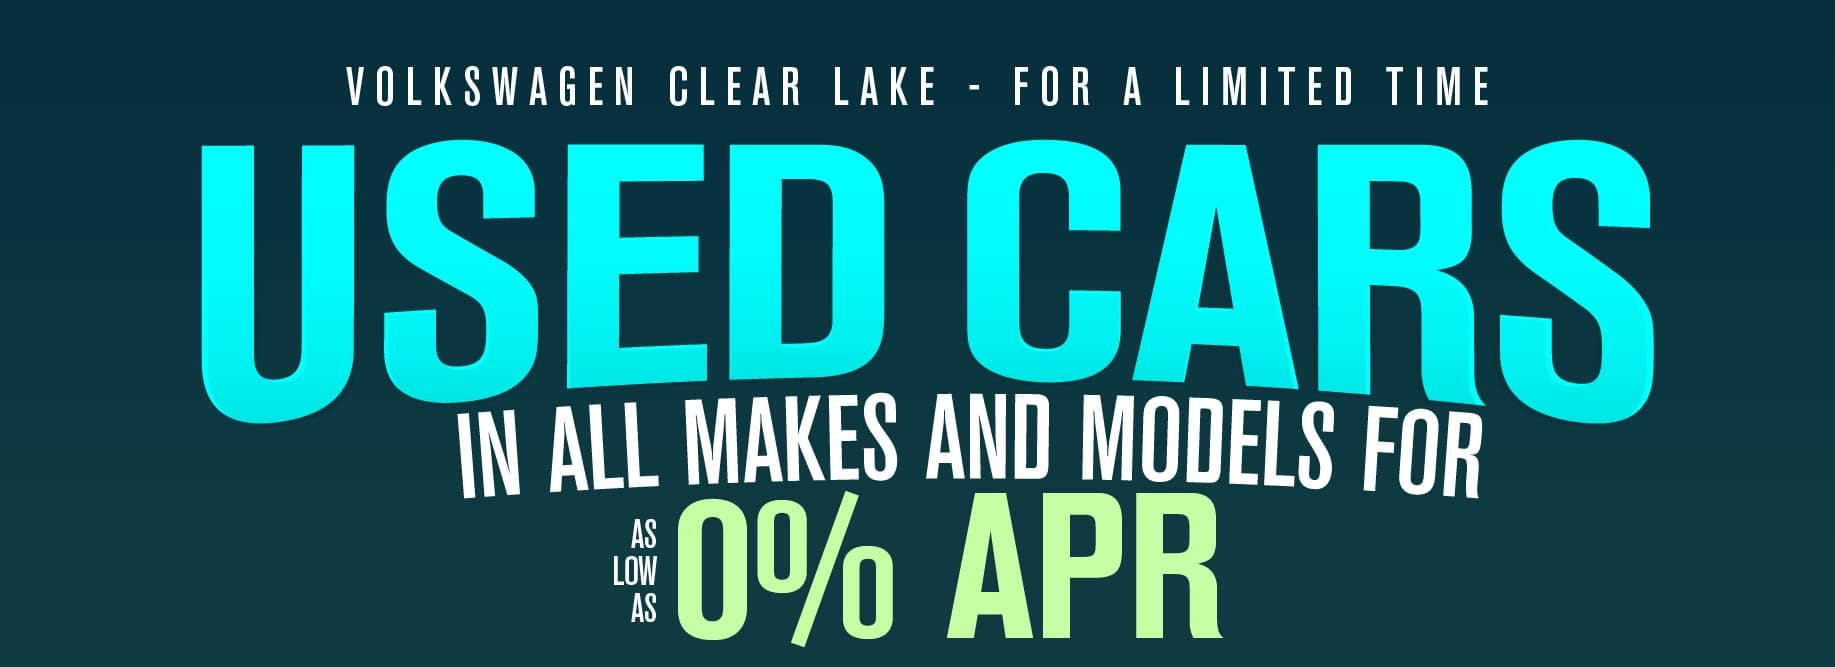 Get as low as 0% APR on used cars at VW Clear Lake!